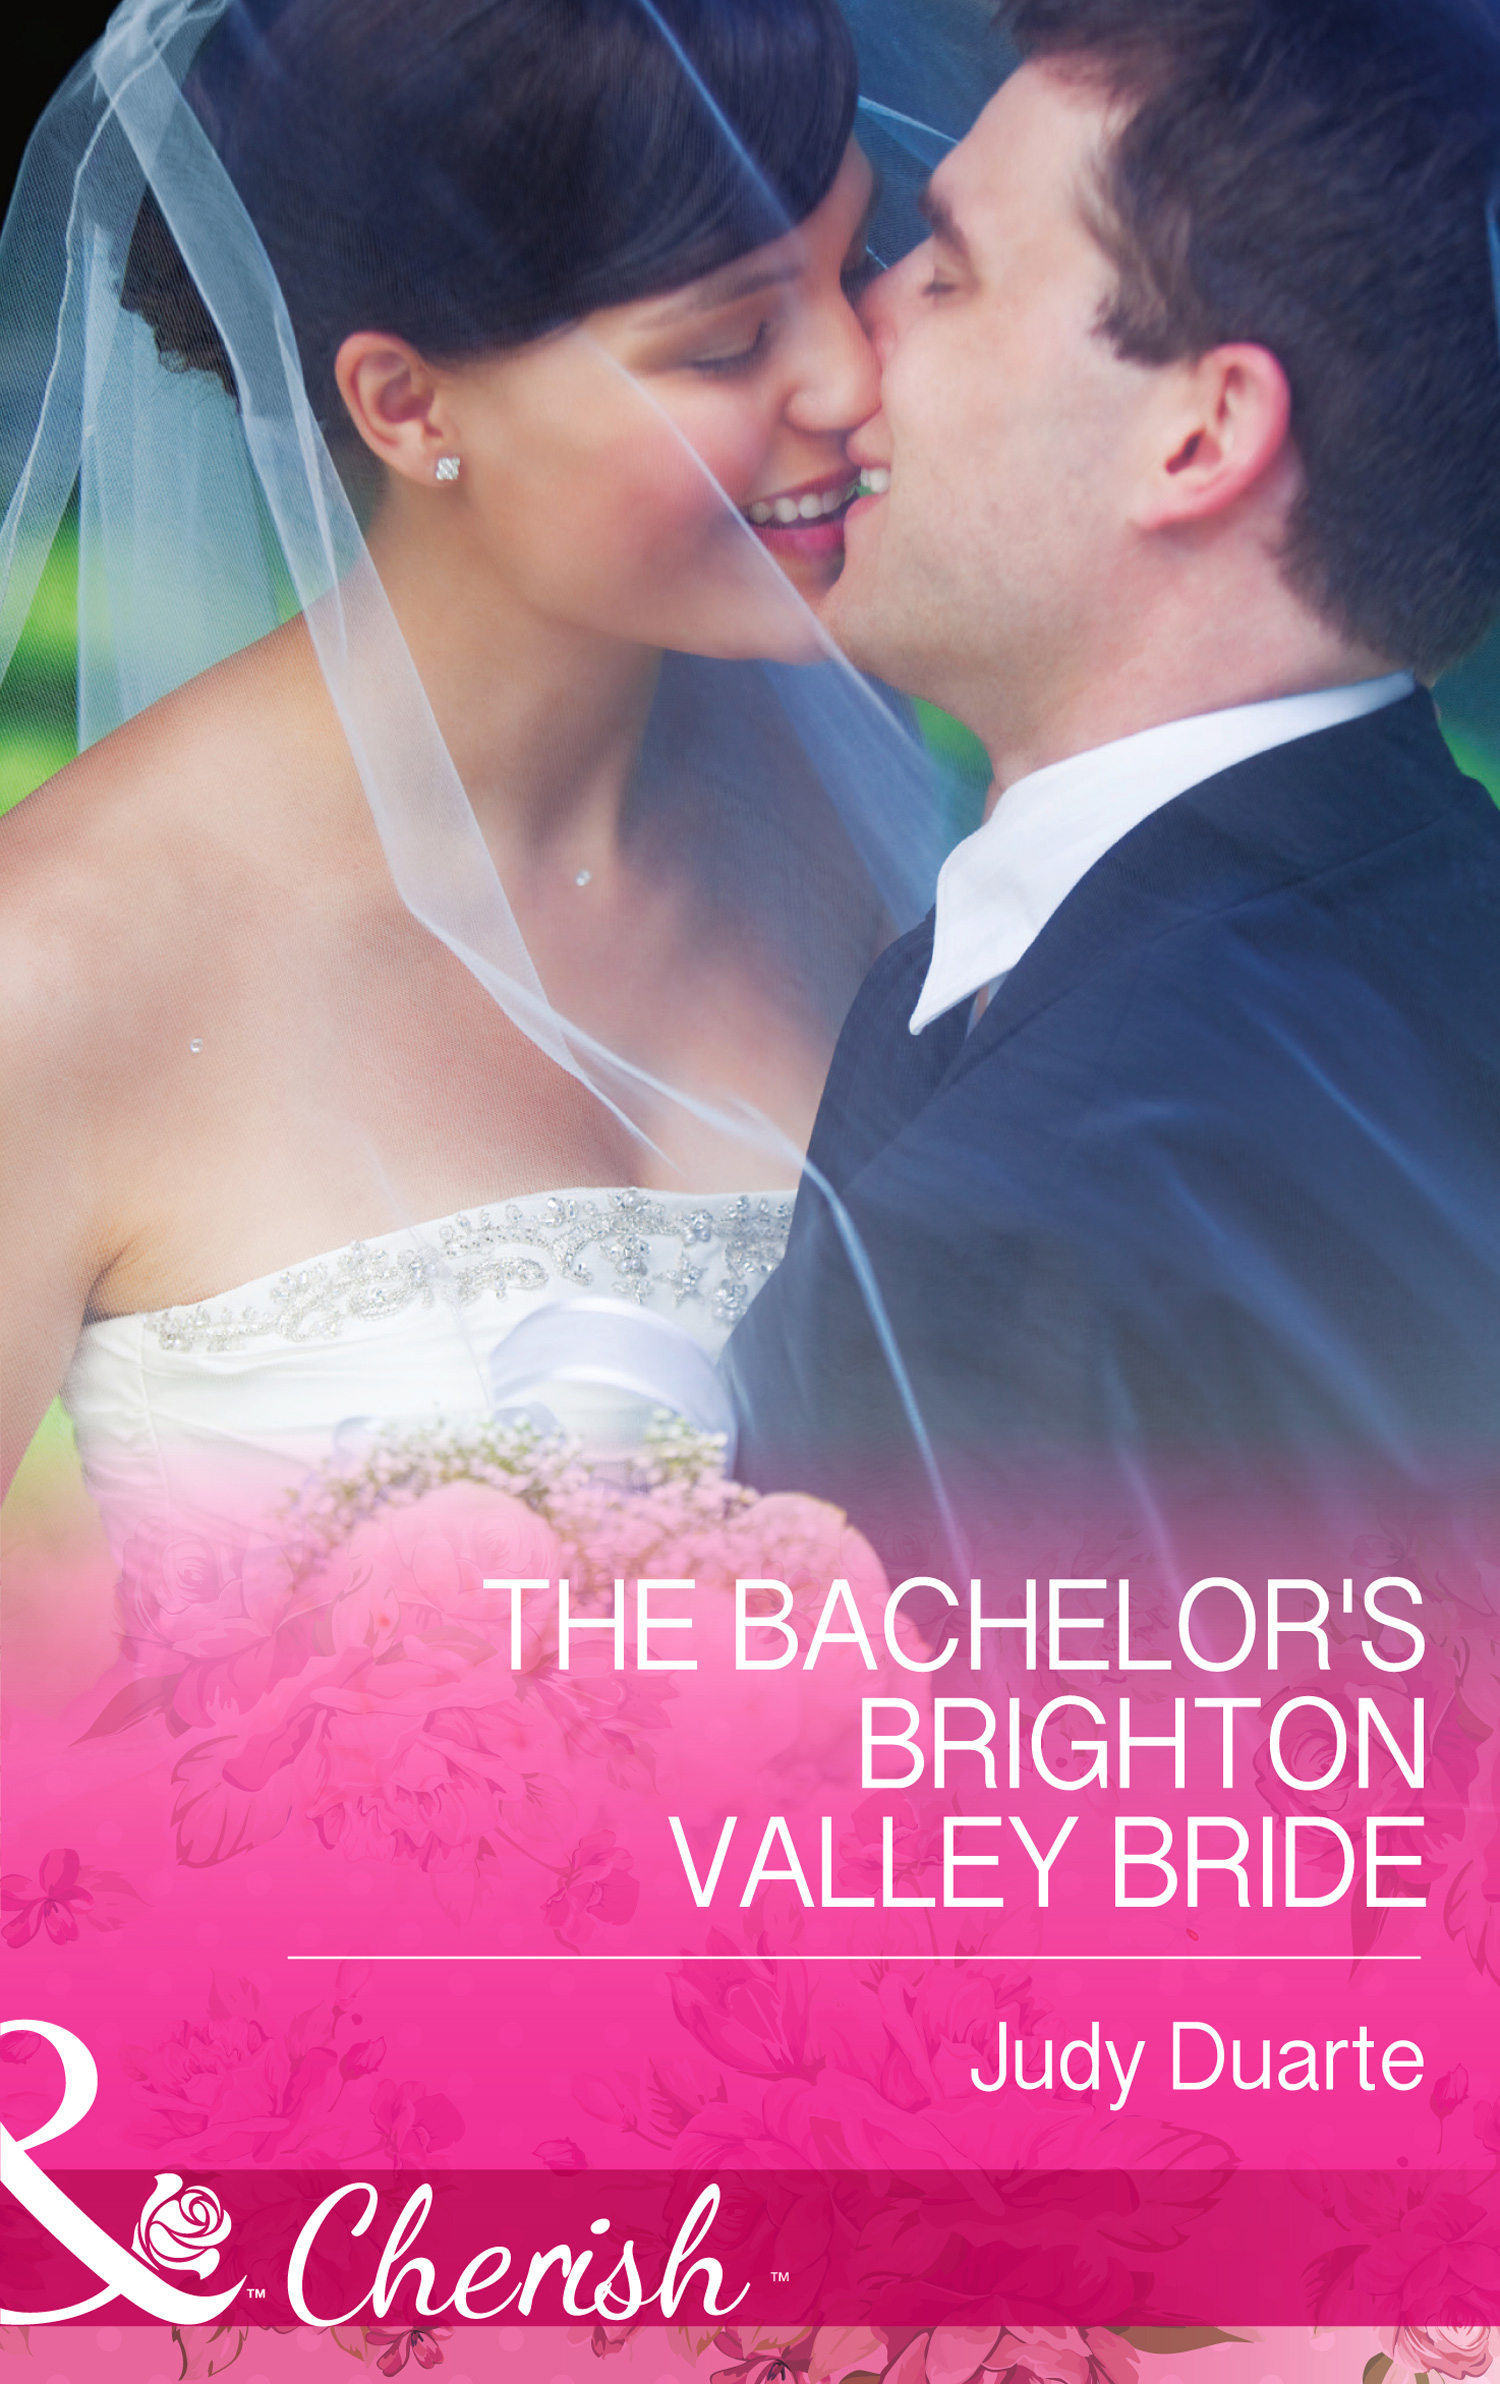 The Bachelor's Brighton Valley Bride